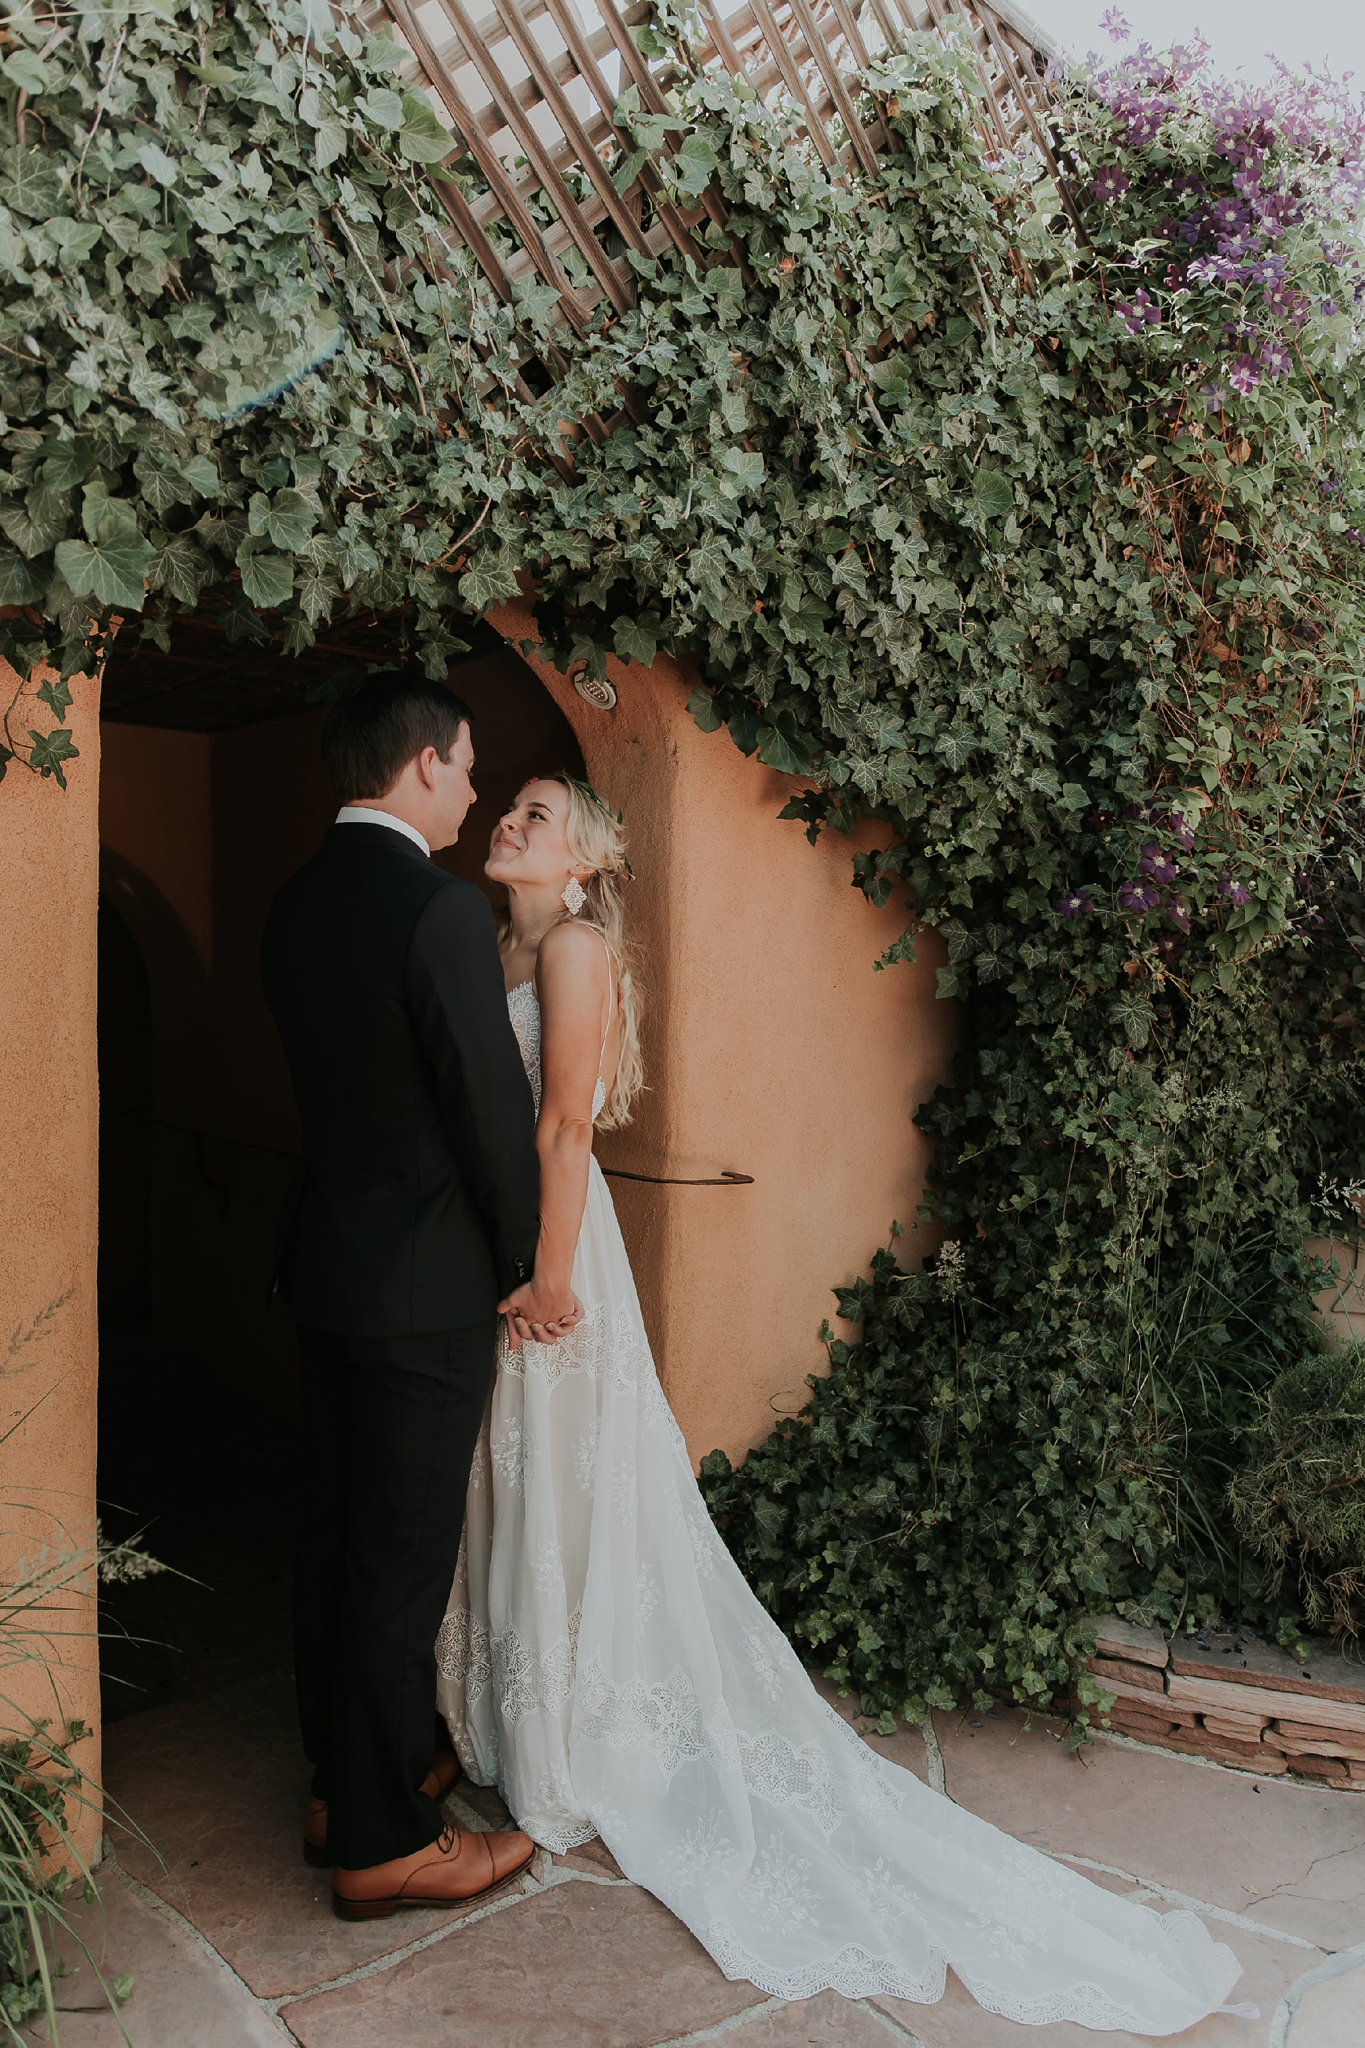 Alicia+lucia+photography+-+albuquerque+wedding+photographer+-+santa+fe+wedding+photography+-+new+mexico+wedding+photographer+-+new+mexico+wedding+-+wedding+venues+-+new+mexico+wedding+venues+-+colorado+wedding+venues_0090.jpg